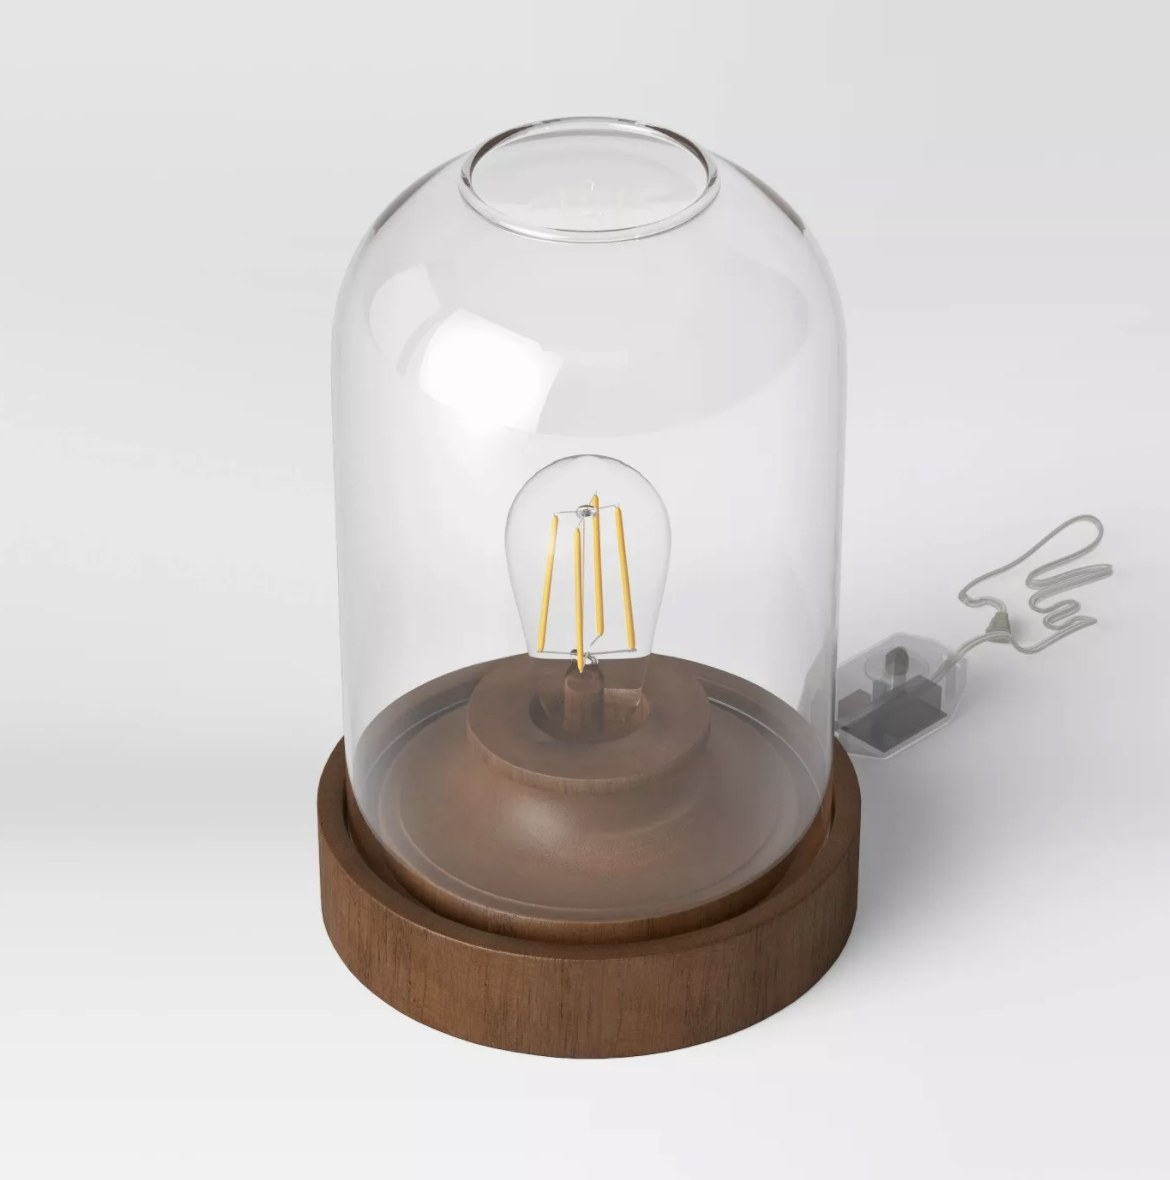 The clear dome base is atop a wooden pedestal